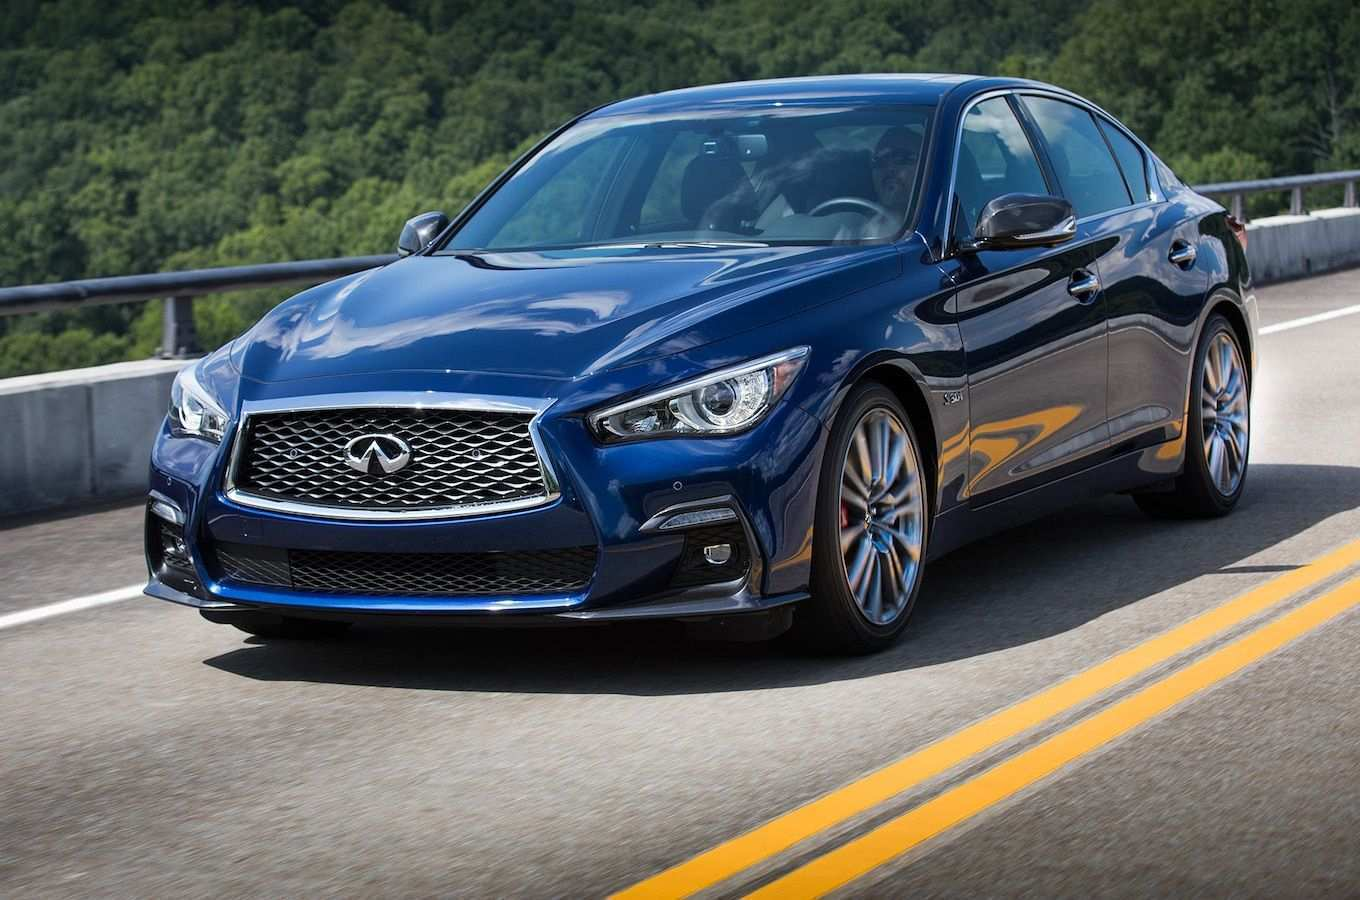 81 All New 2020 Infiniti M45 History for 2020 Infiniti M45